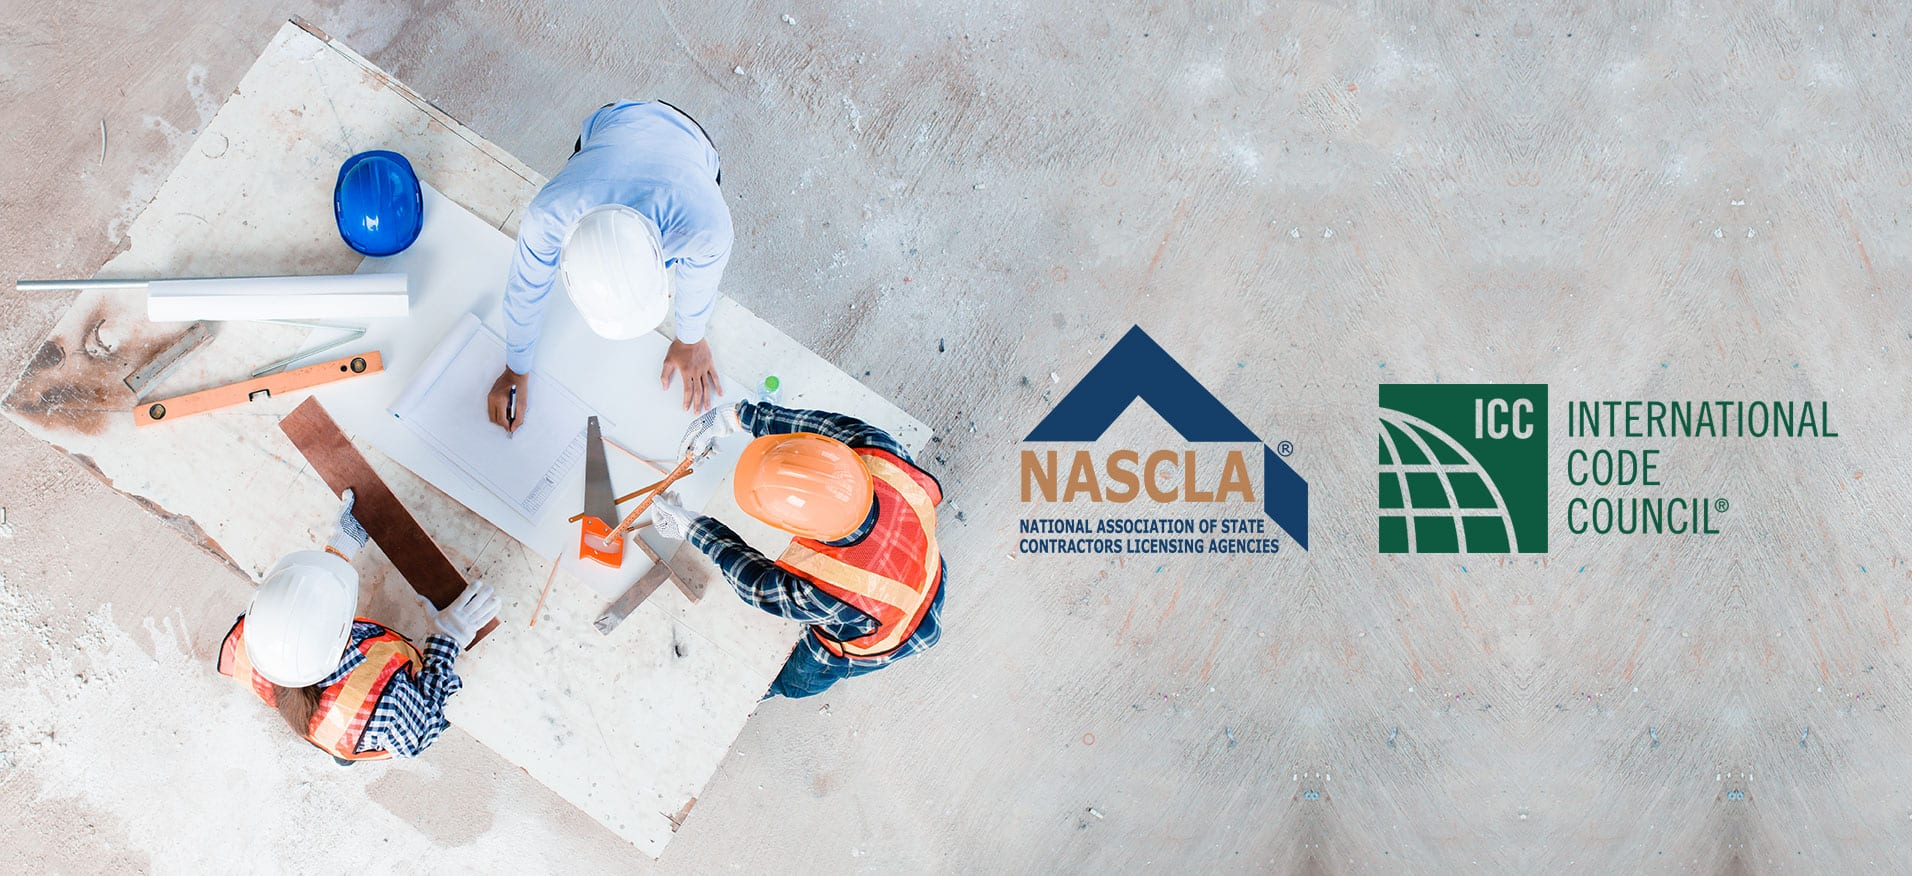 NASCLA and ICC certifications